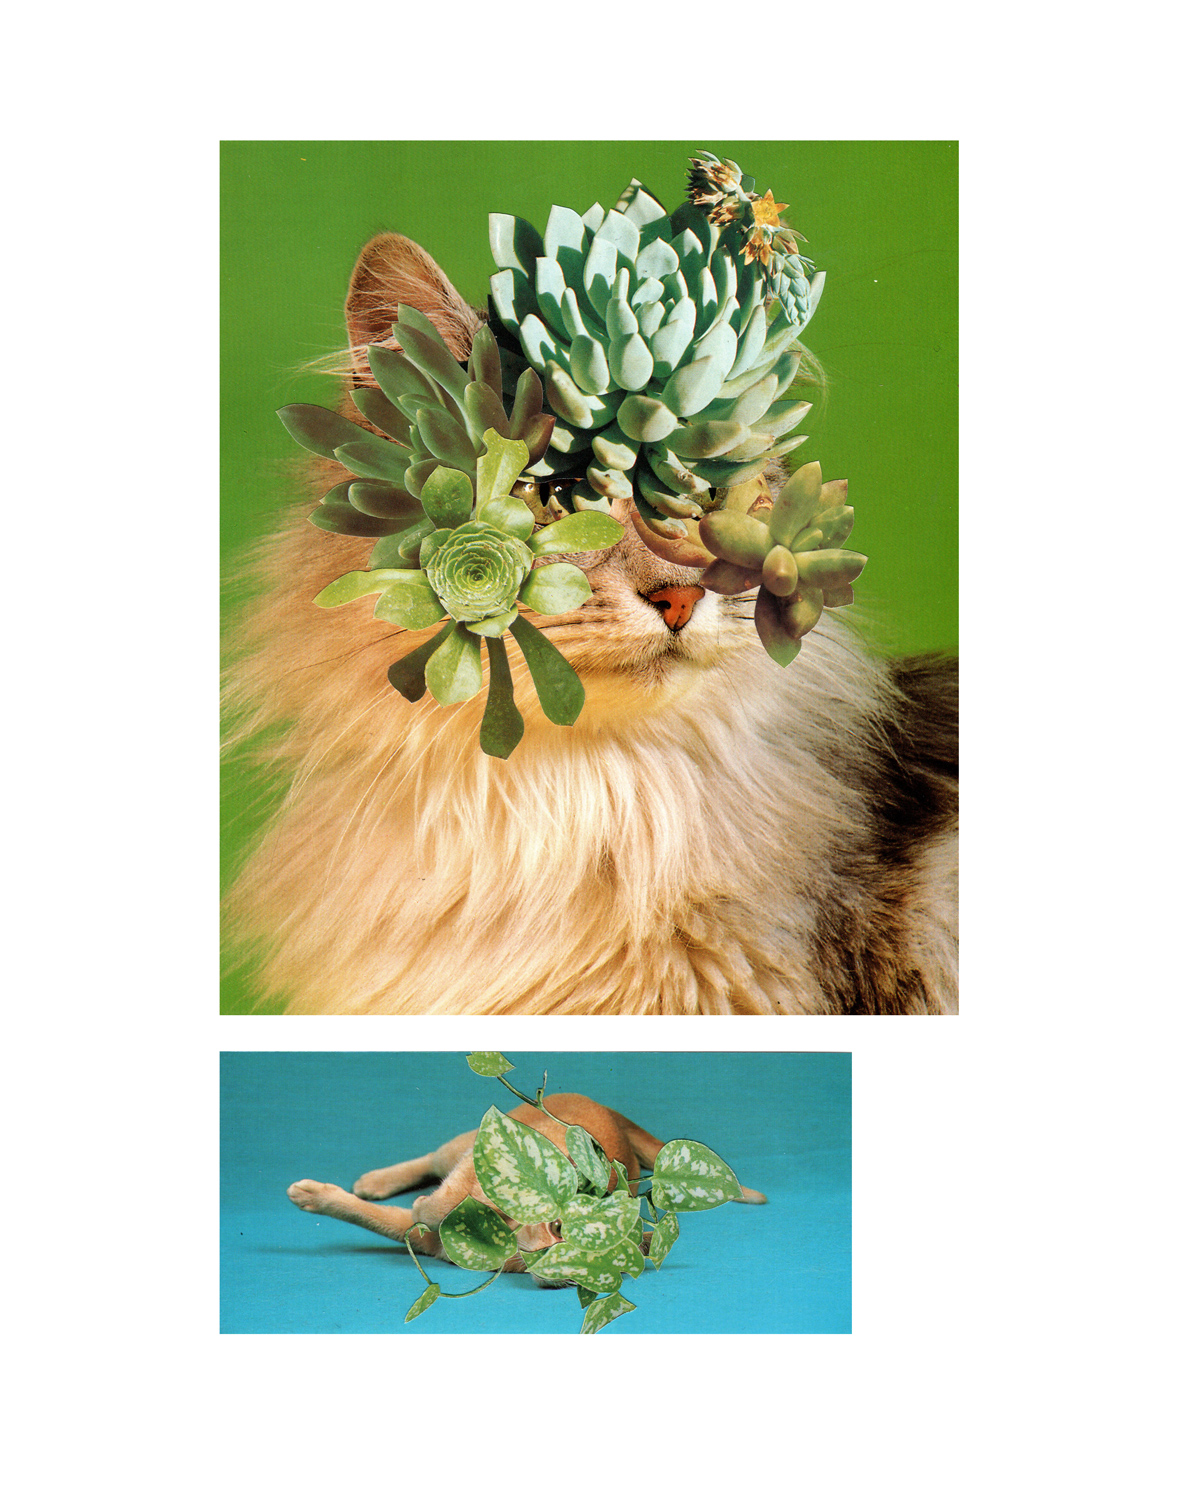 Photomontage - Stephen Eichhorn - Cats & Plants - Cat Sampler 2011